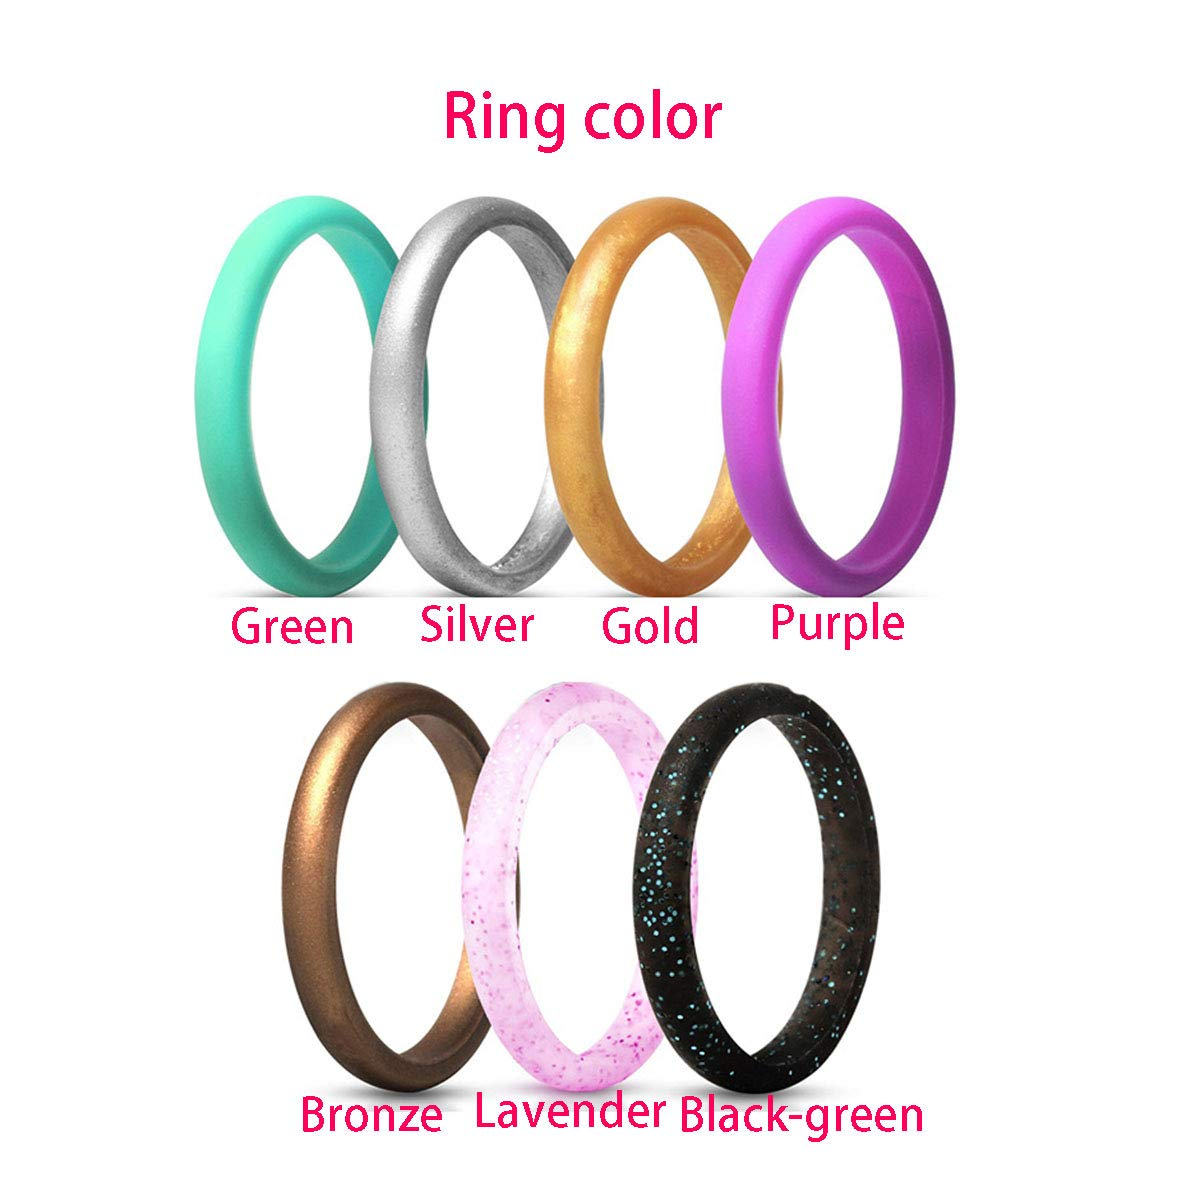 Kebaner 10 Pack 7 Pack 2.7MM Wide Silicone Wedding Ring Premium Medical Grade Stackable Band for Women